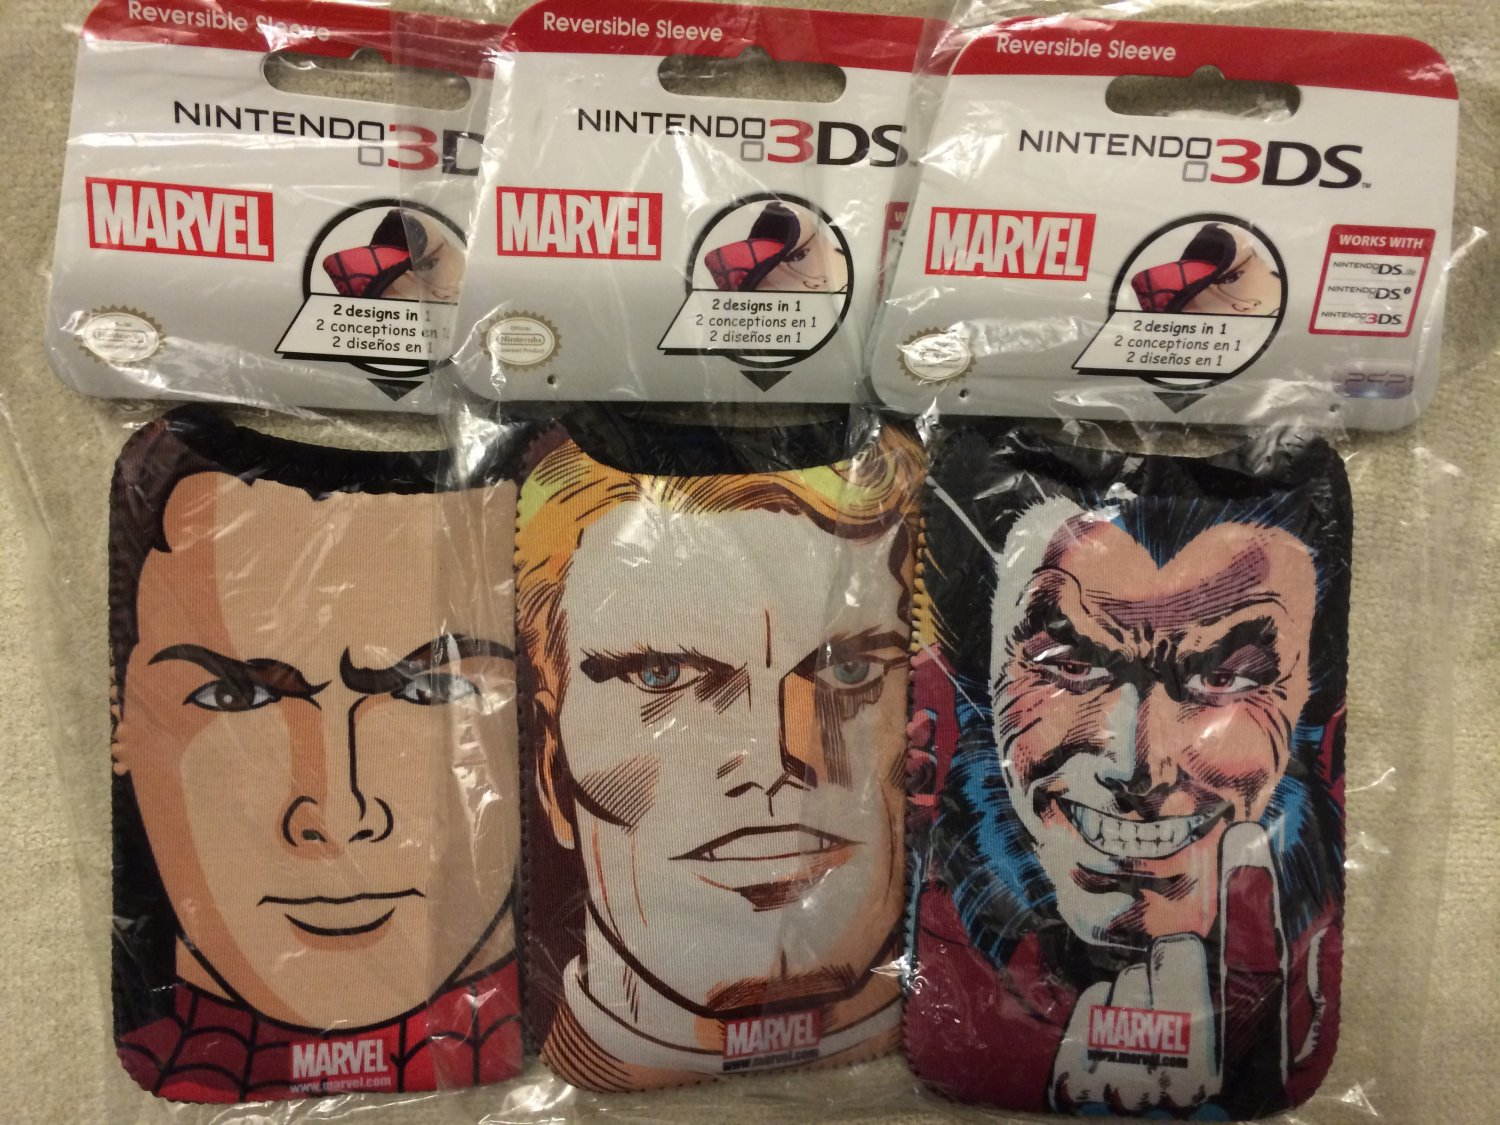 SDCC 2014 Marvel Exclusive NINTENDO 3DS Reversible Sleeve Cases